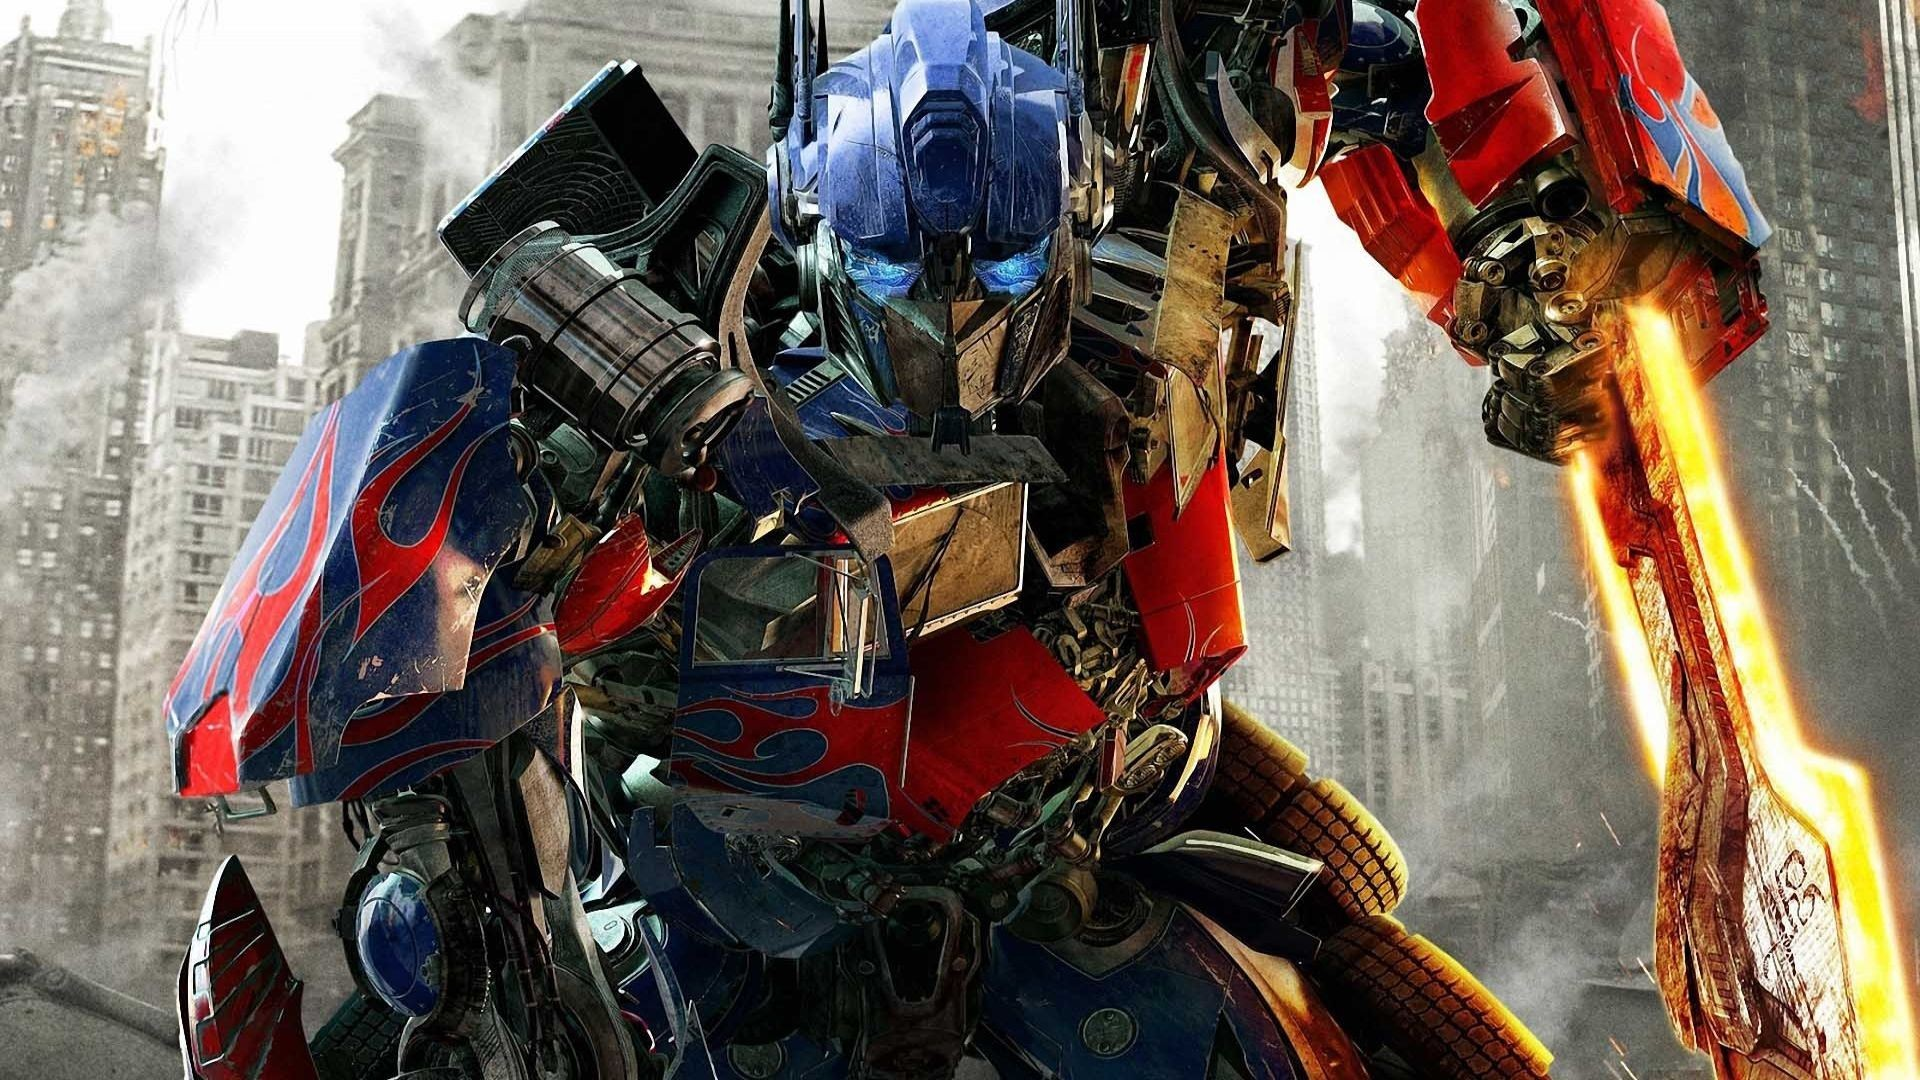 1920x1080 ... HD Transformers Wallpapers & Backgrounds For Free Download ...